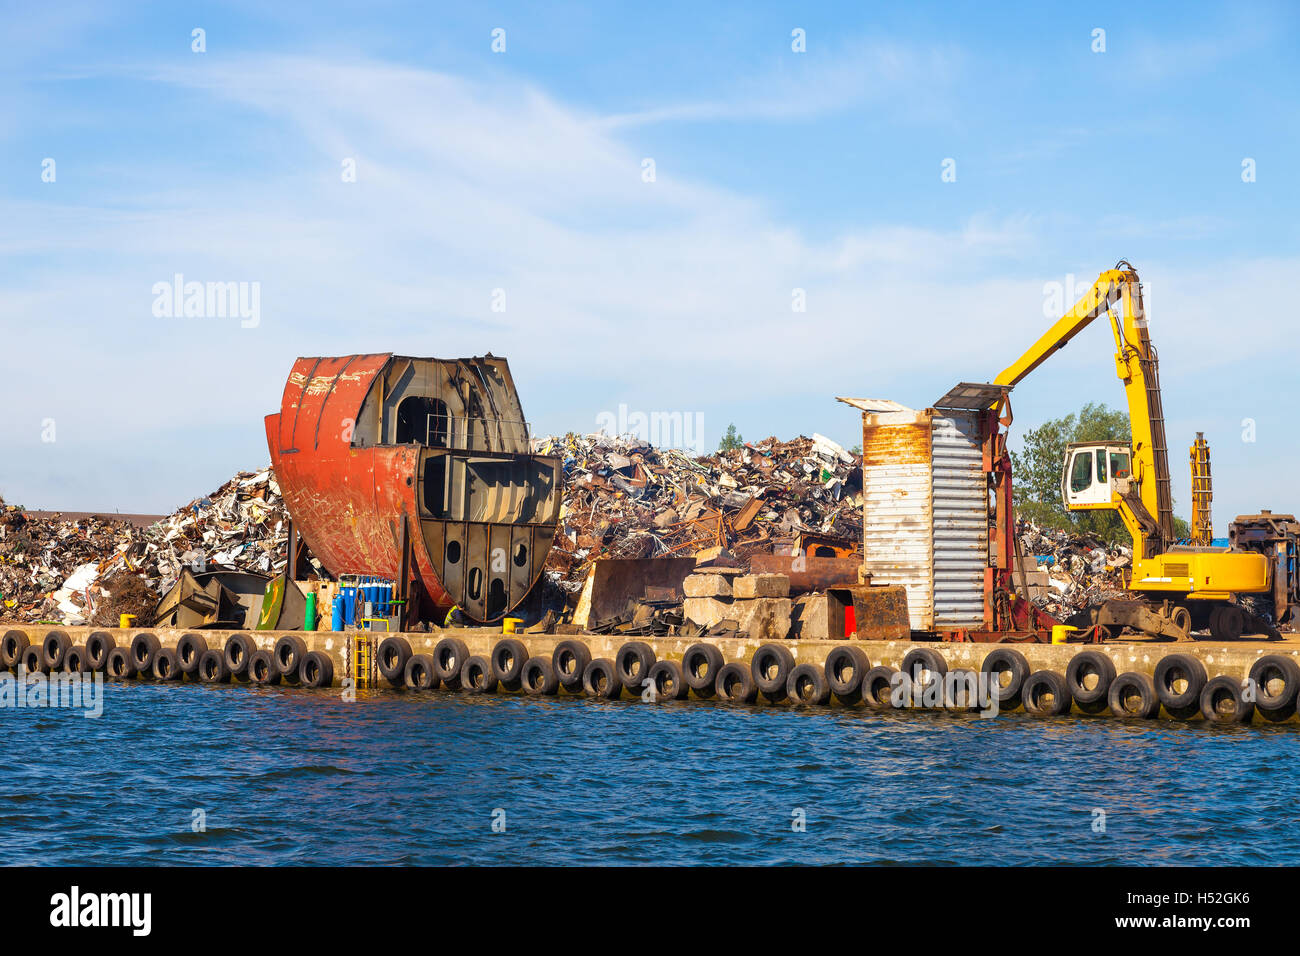 Dismantling the ship on scrap metal ready for recycling. - Stock Image